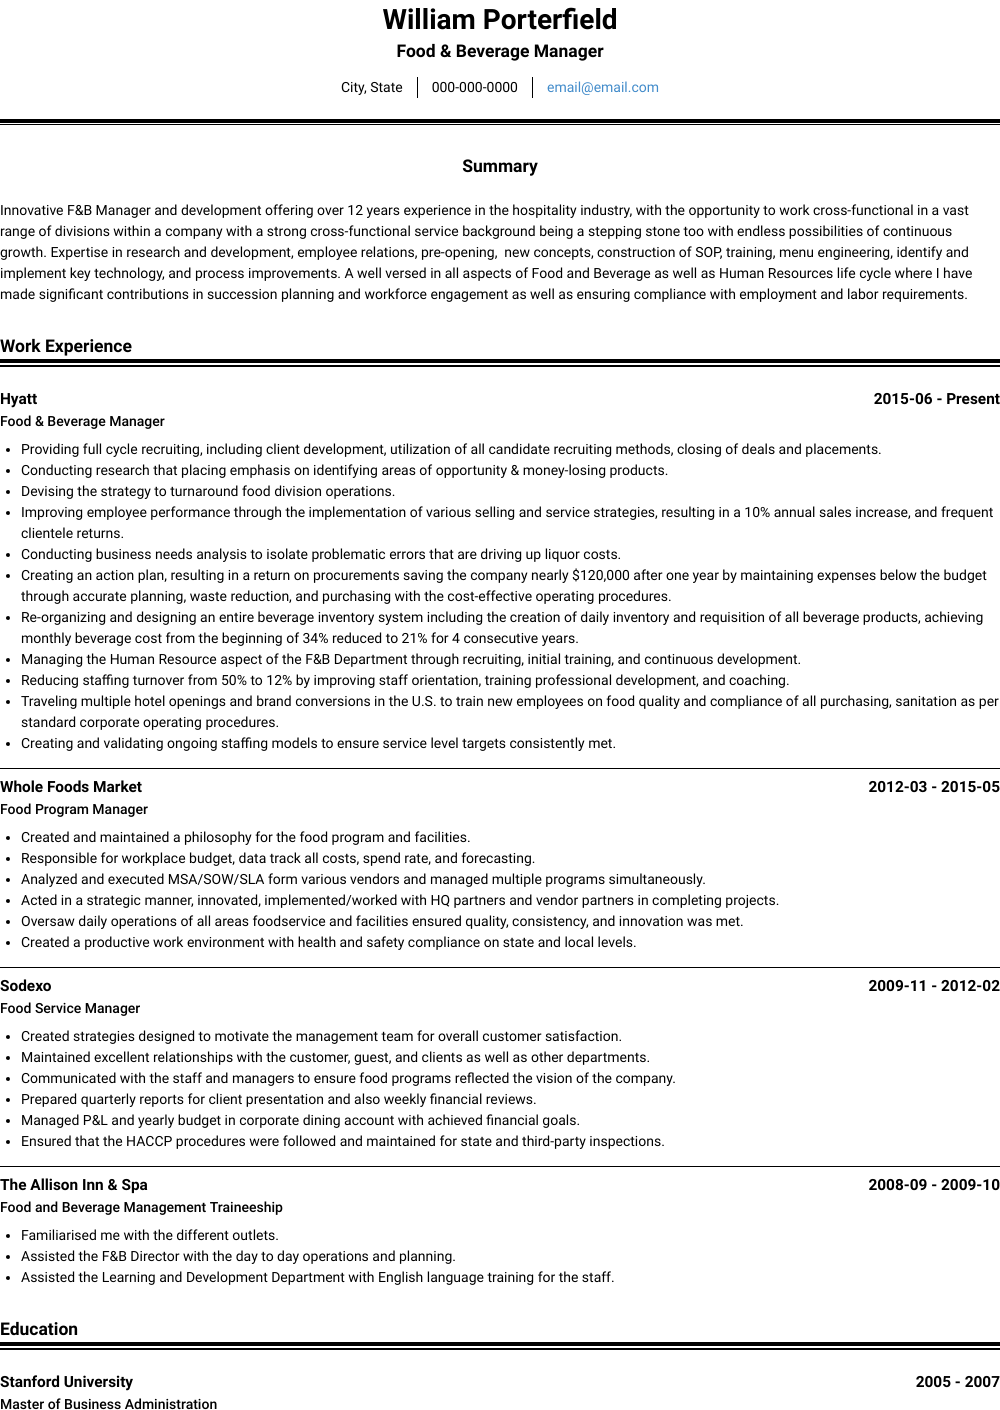 Food & Beverage Manager Resume Sample and Template